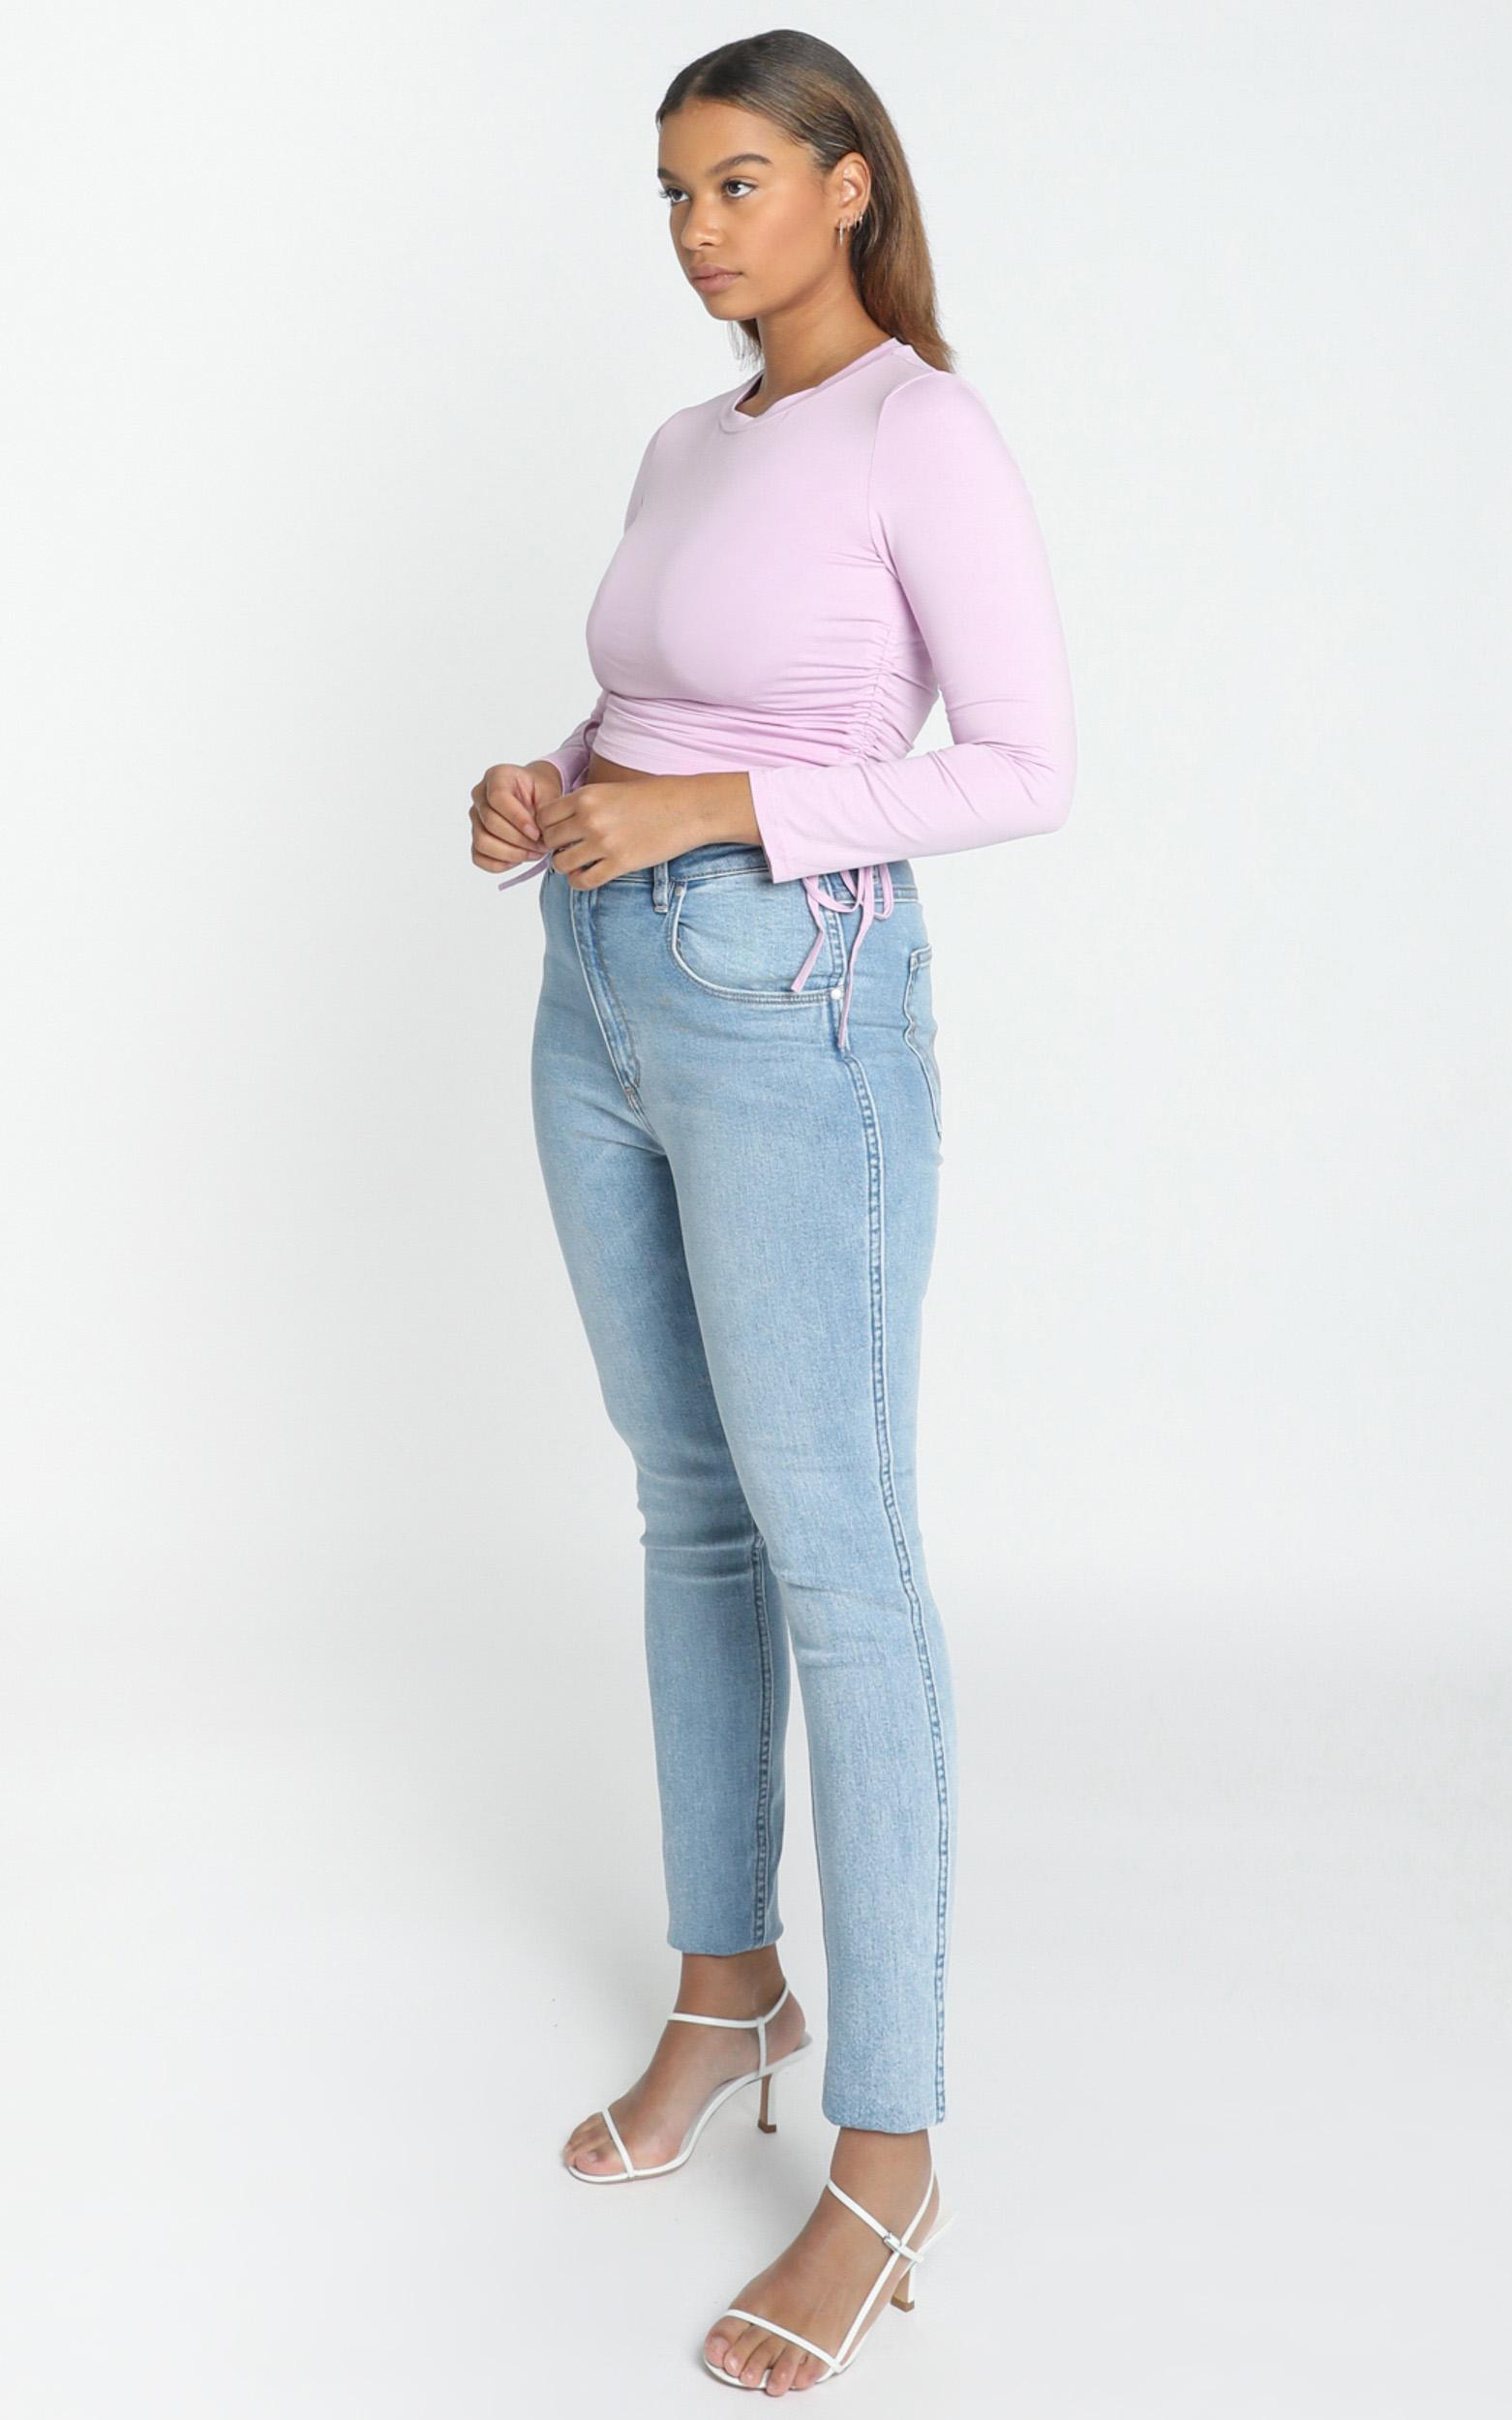 Like Never Before Top in lilac - 6 (XS), Purple, hi-res image number null